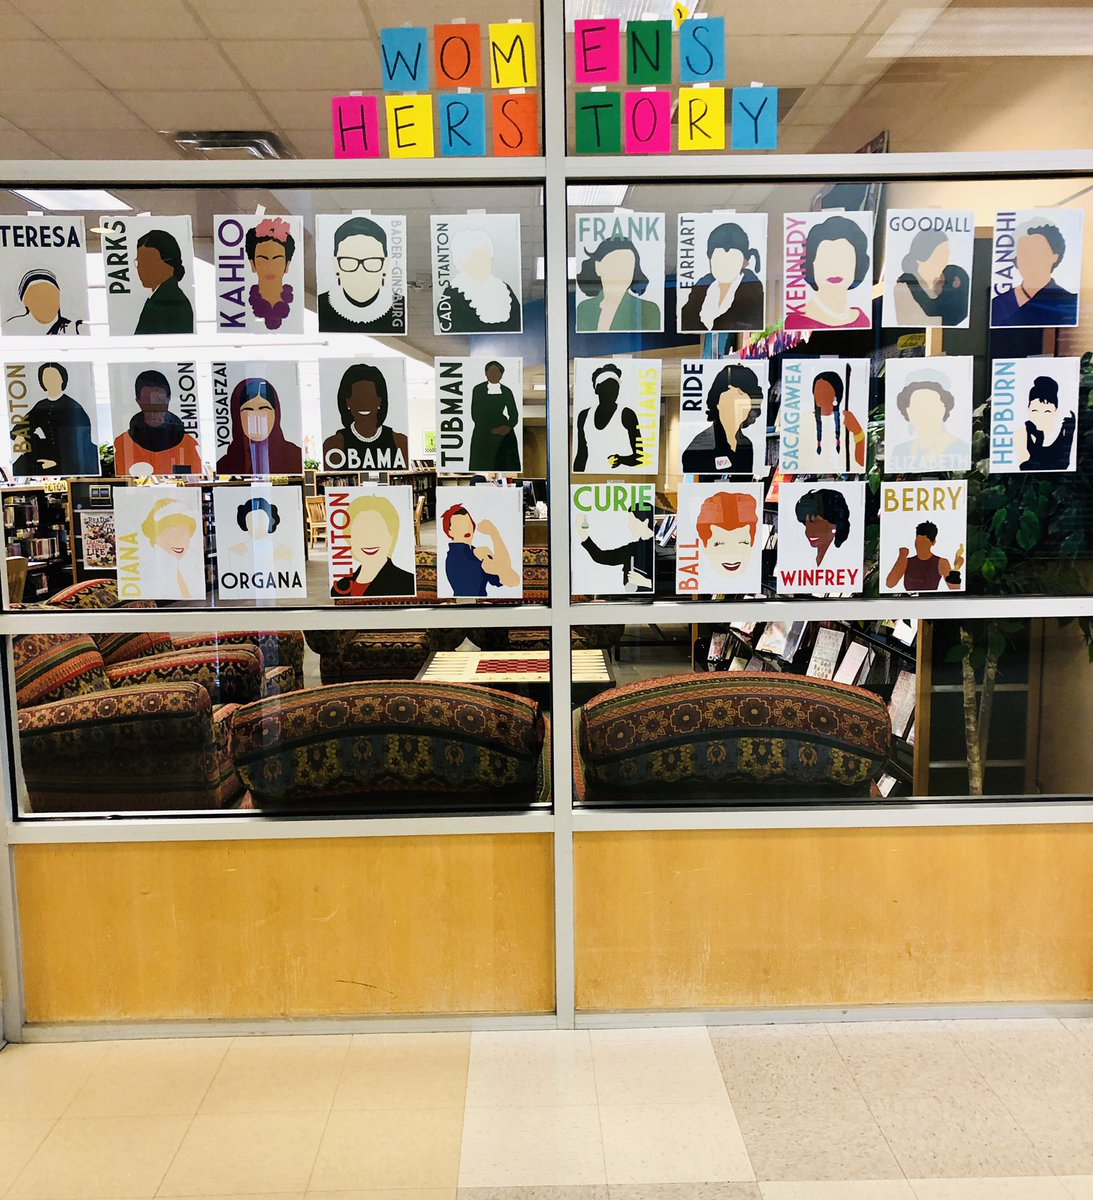 Stop by the library and check out some of our #WomensHistoryMonth  books @deZavalaMS ! #InternationalWomensDay <br>http://pic.twitter.com/TutIDUZbJ8